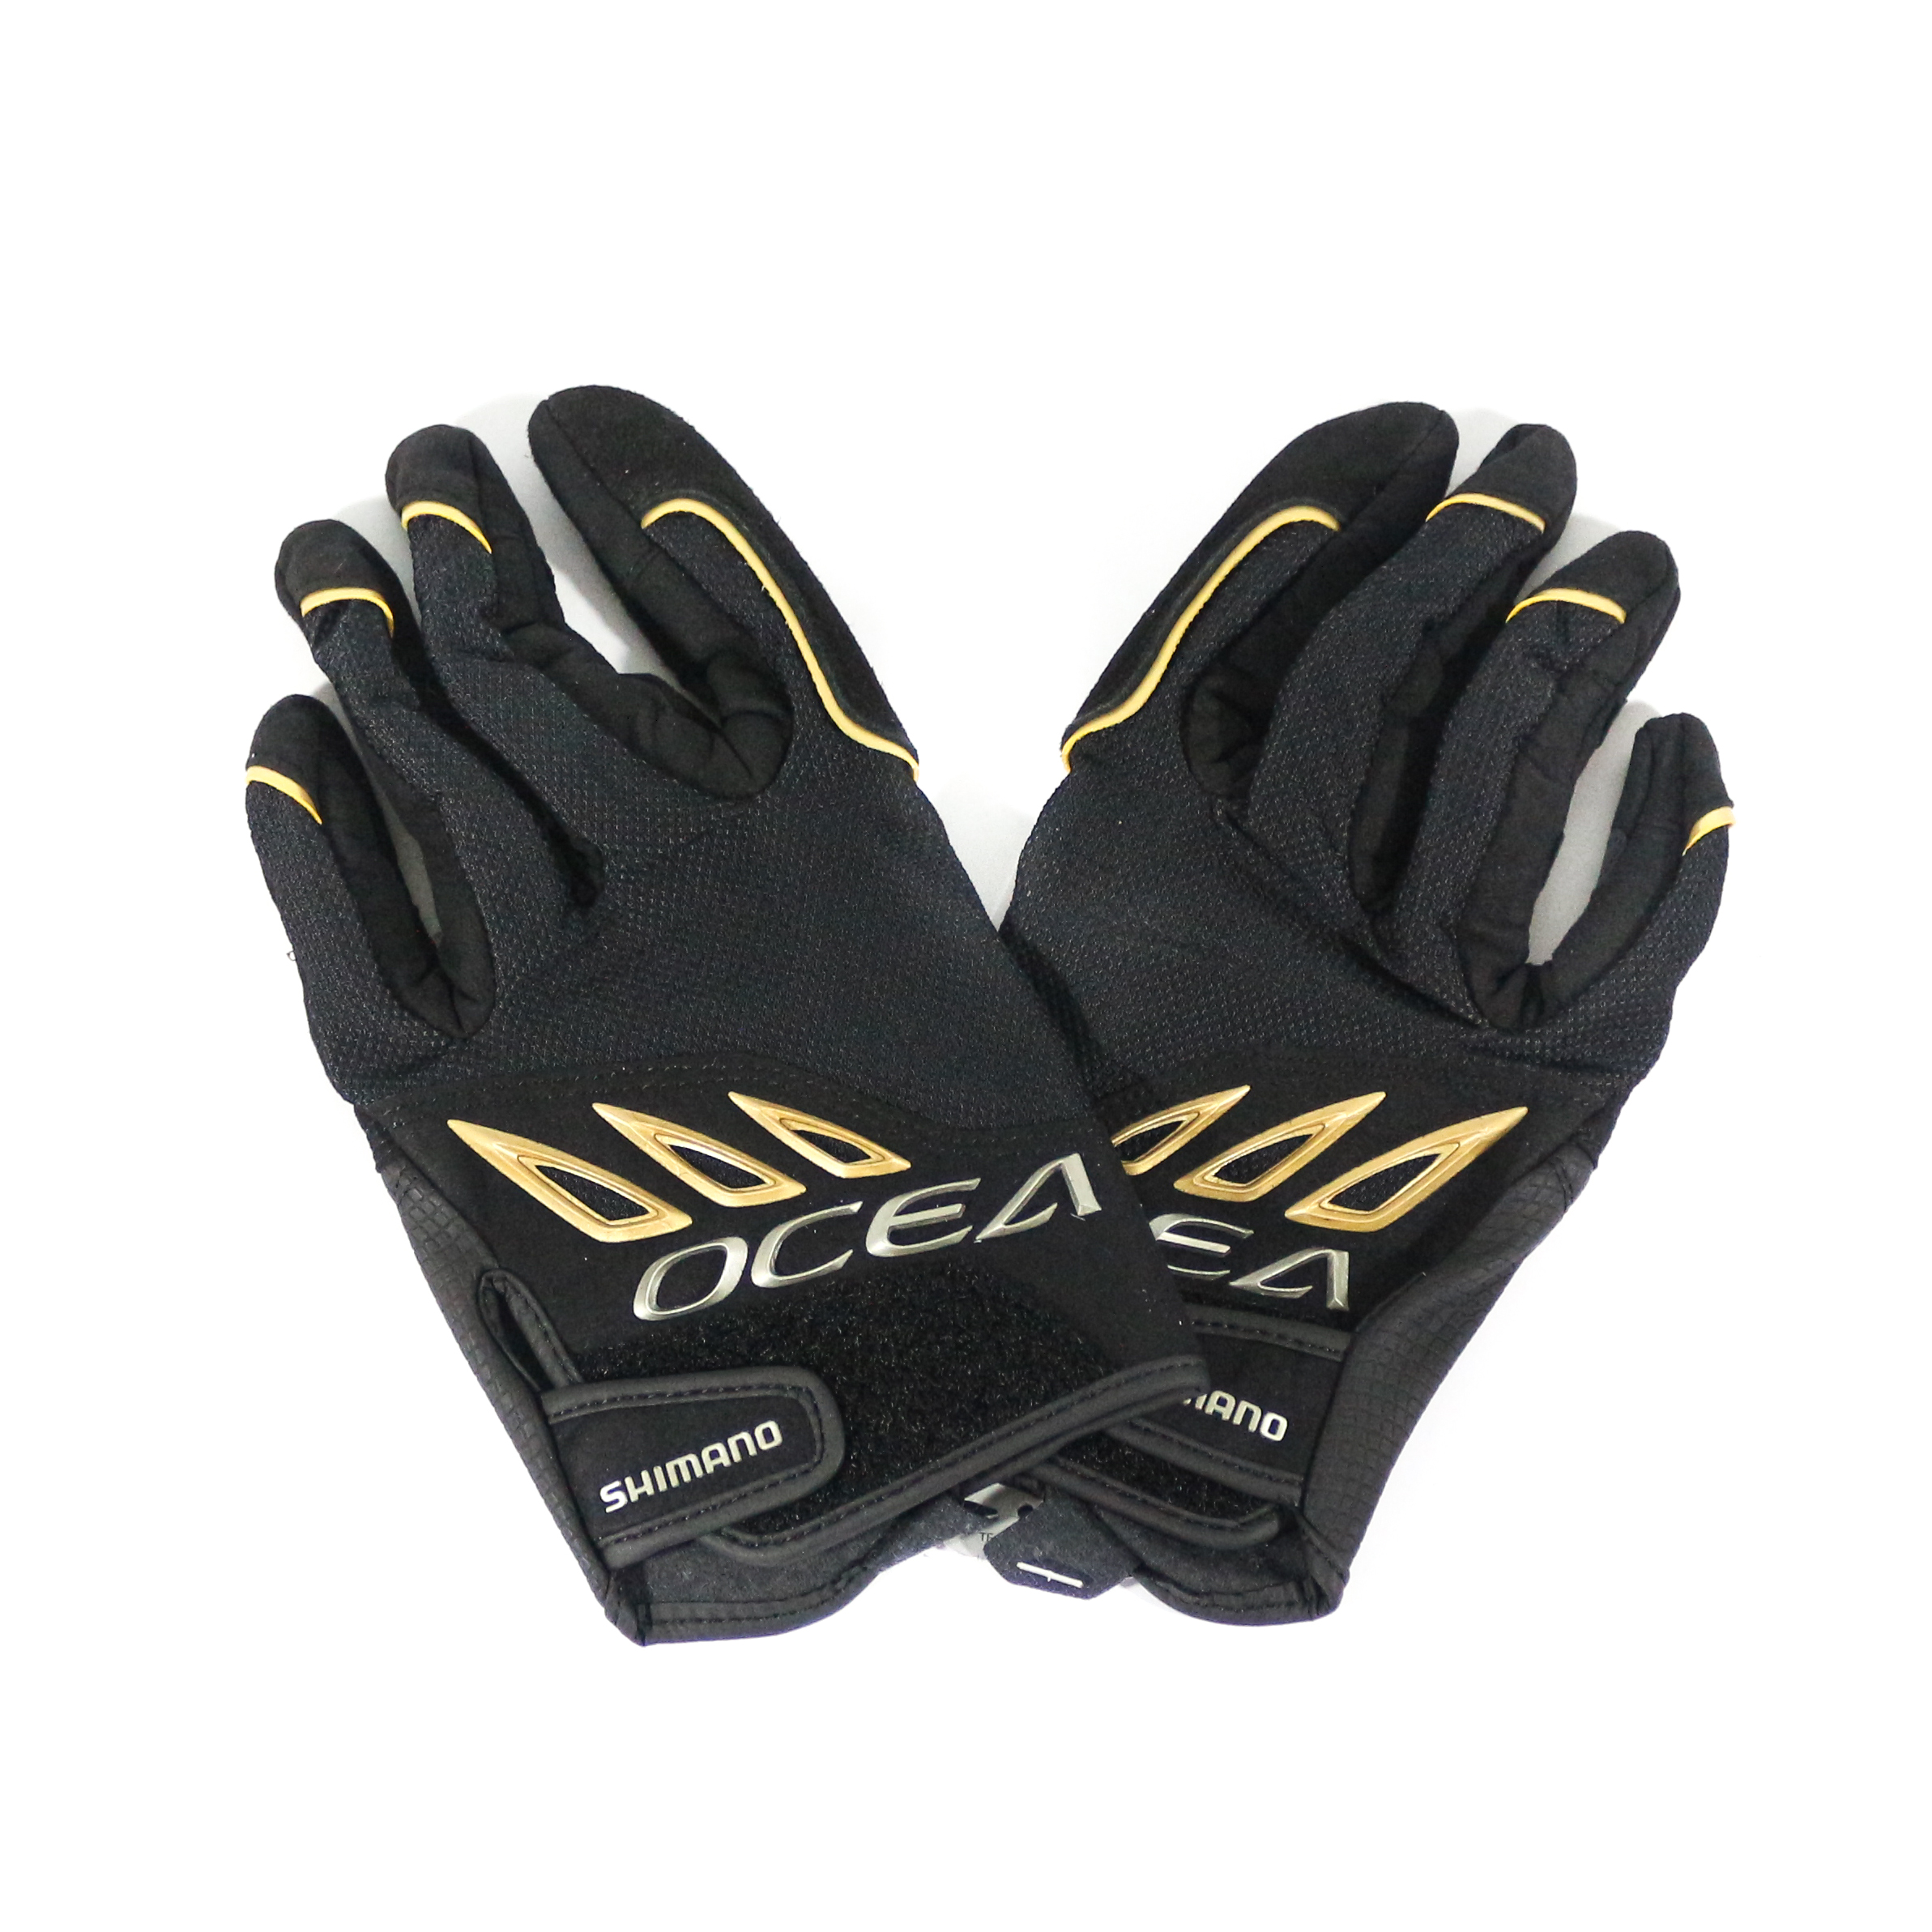 Shimano GL-292Q Gloves Big Game Support Black Size M 479464